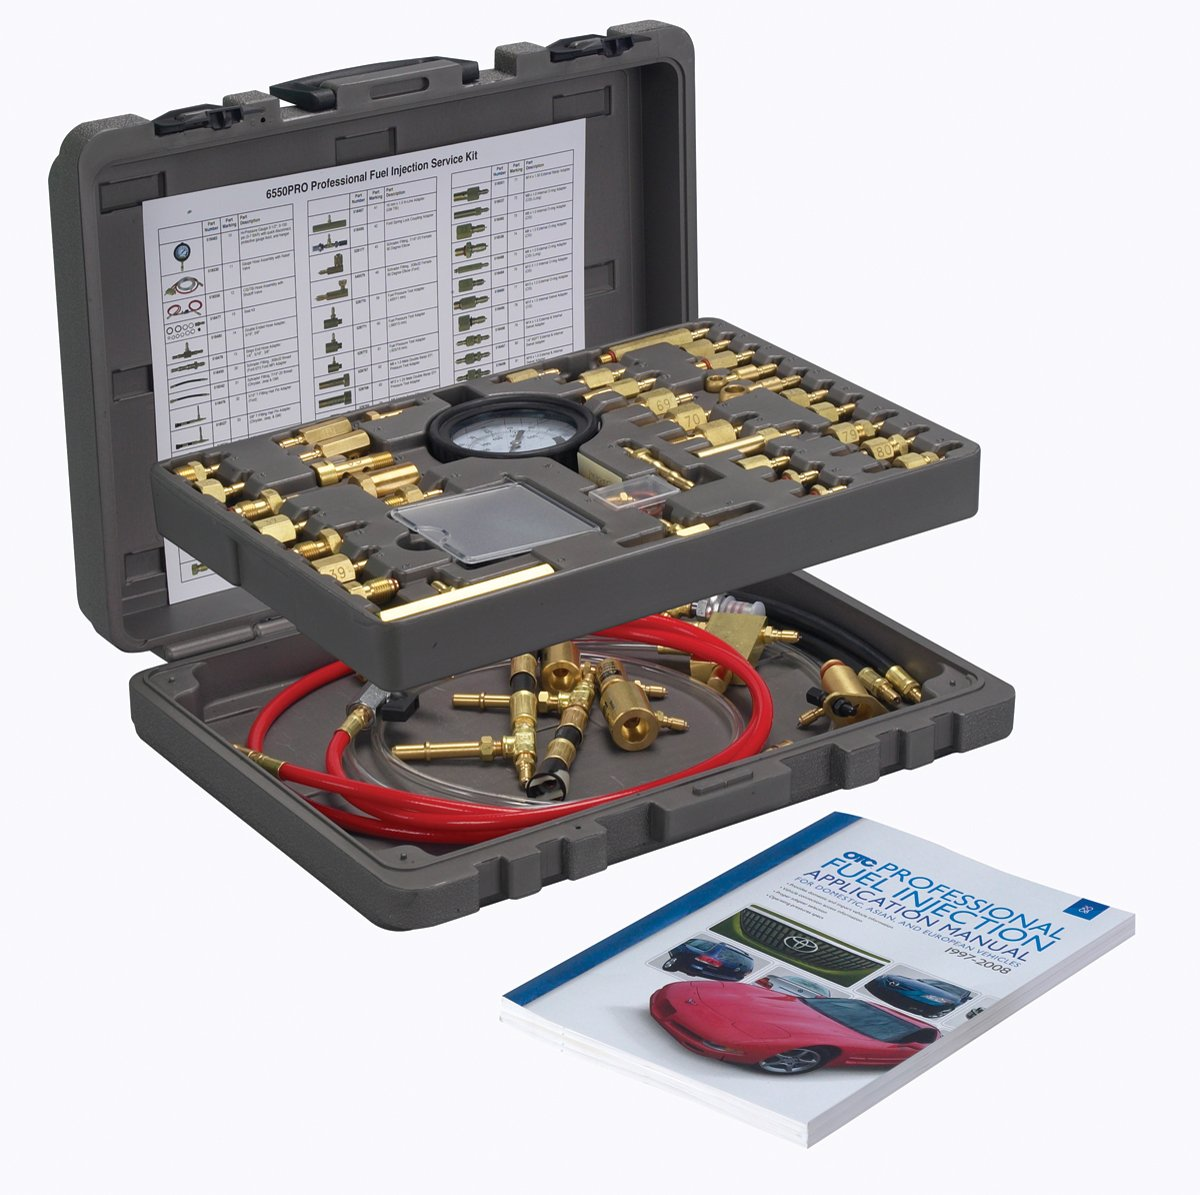 Best-Review-Of-OTC-6550PRO-Professional-Master-Fuel-Injection-Service-Kit-2